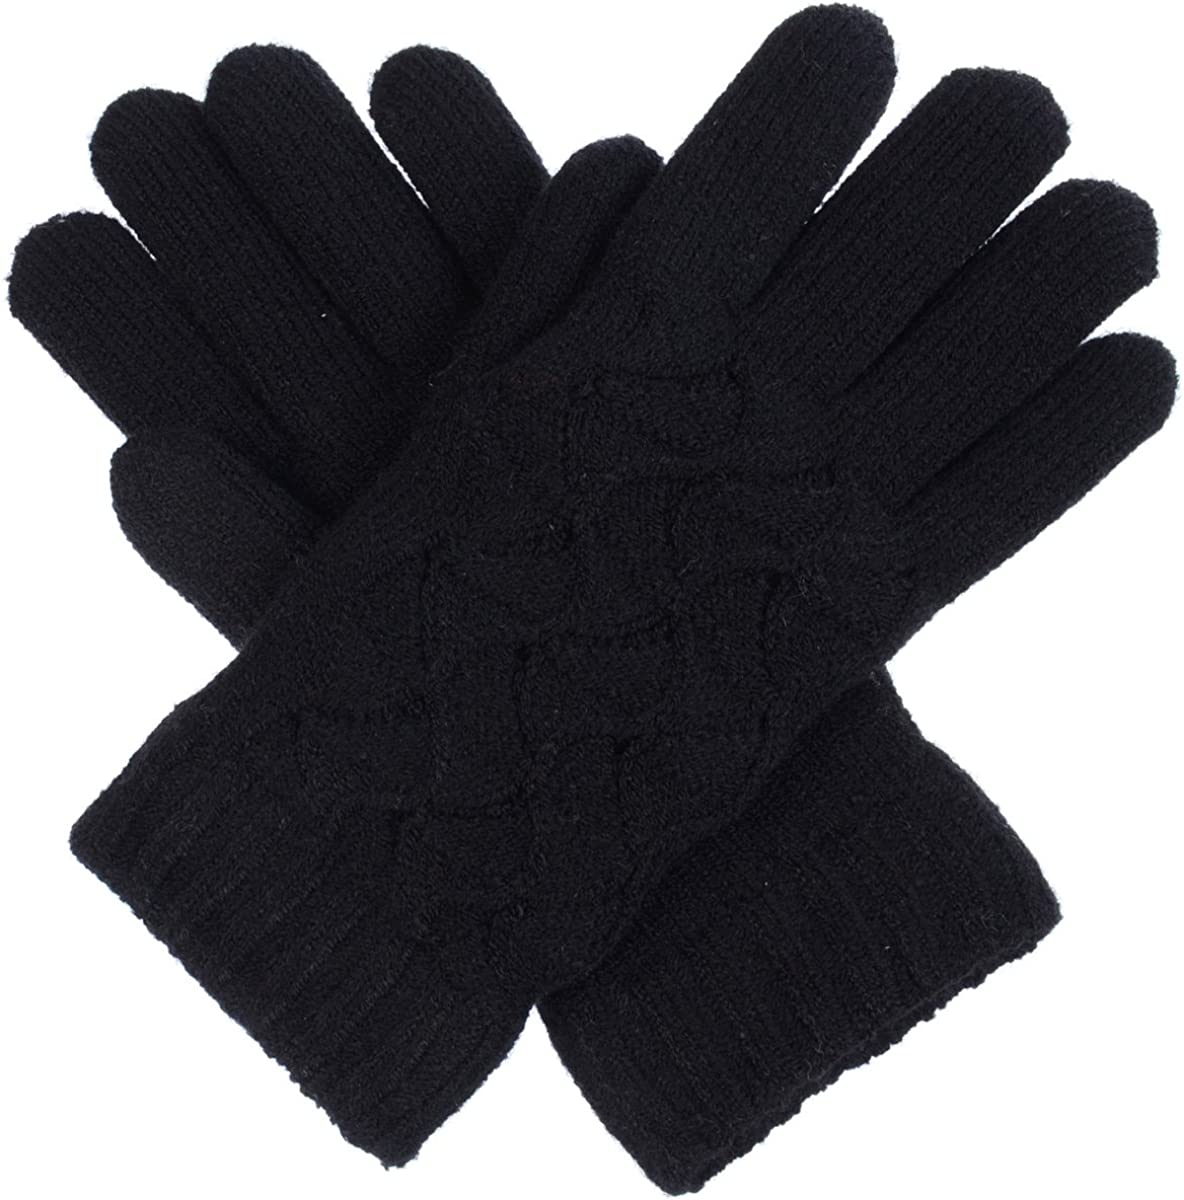 BYOS Womens Winter Fashion Swirl Pattern Plush Faux Fur Fleece Lined Knit Gloves